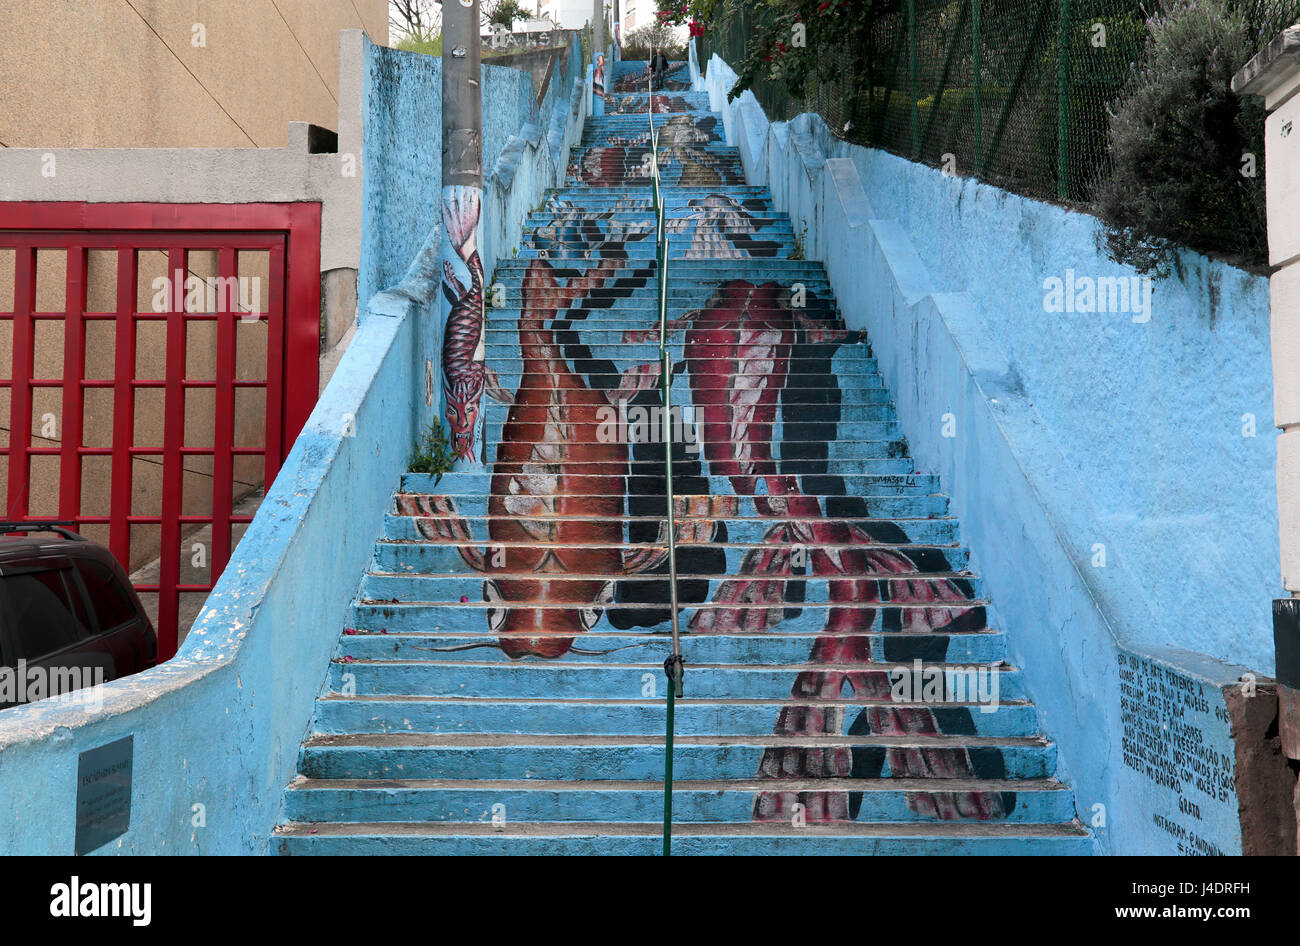 Graffiti on a staircase in the city of Sao Paulo - Brazil - Stock Image